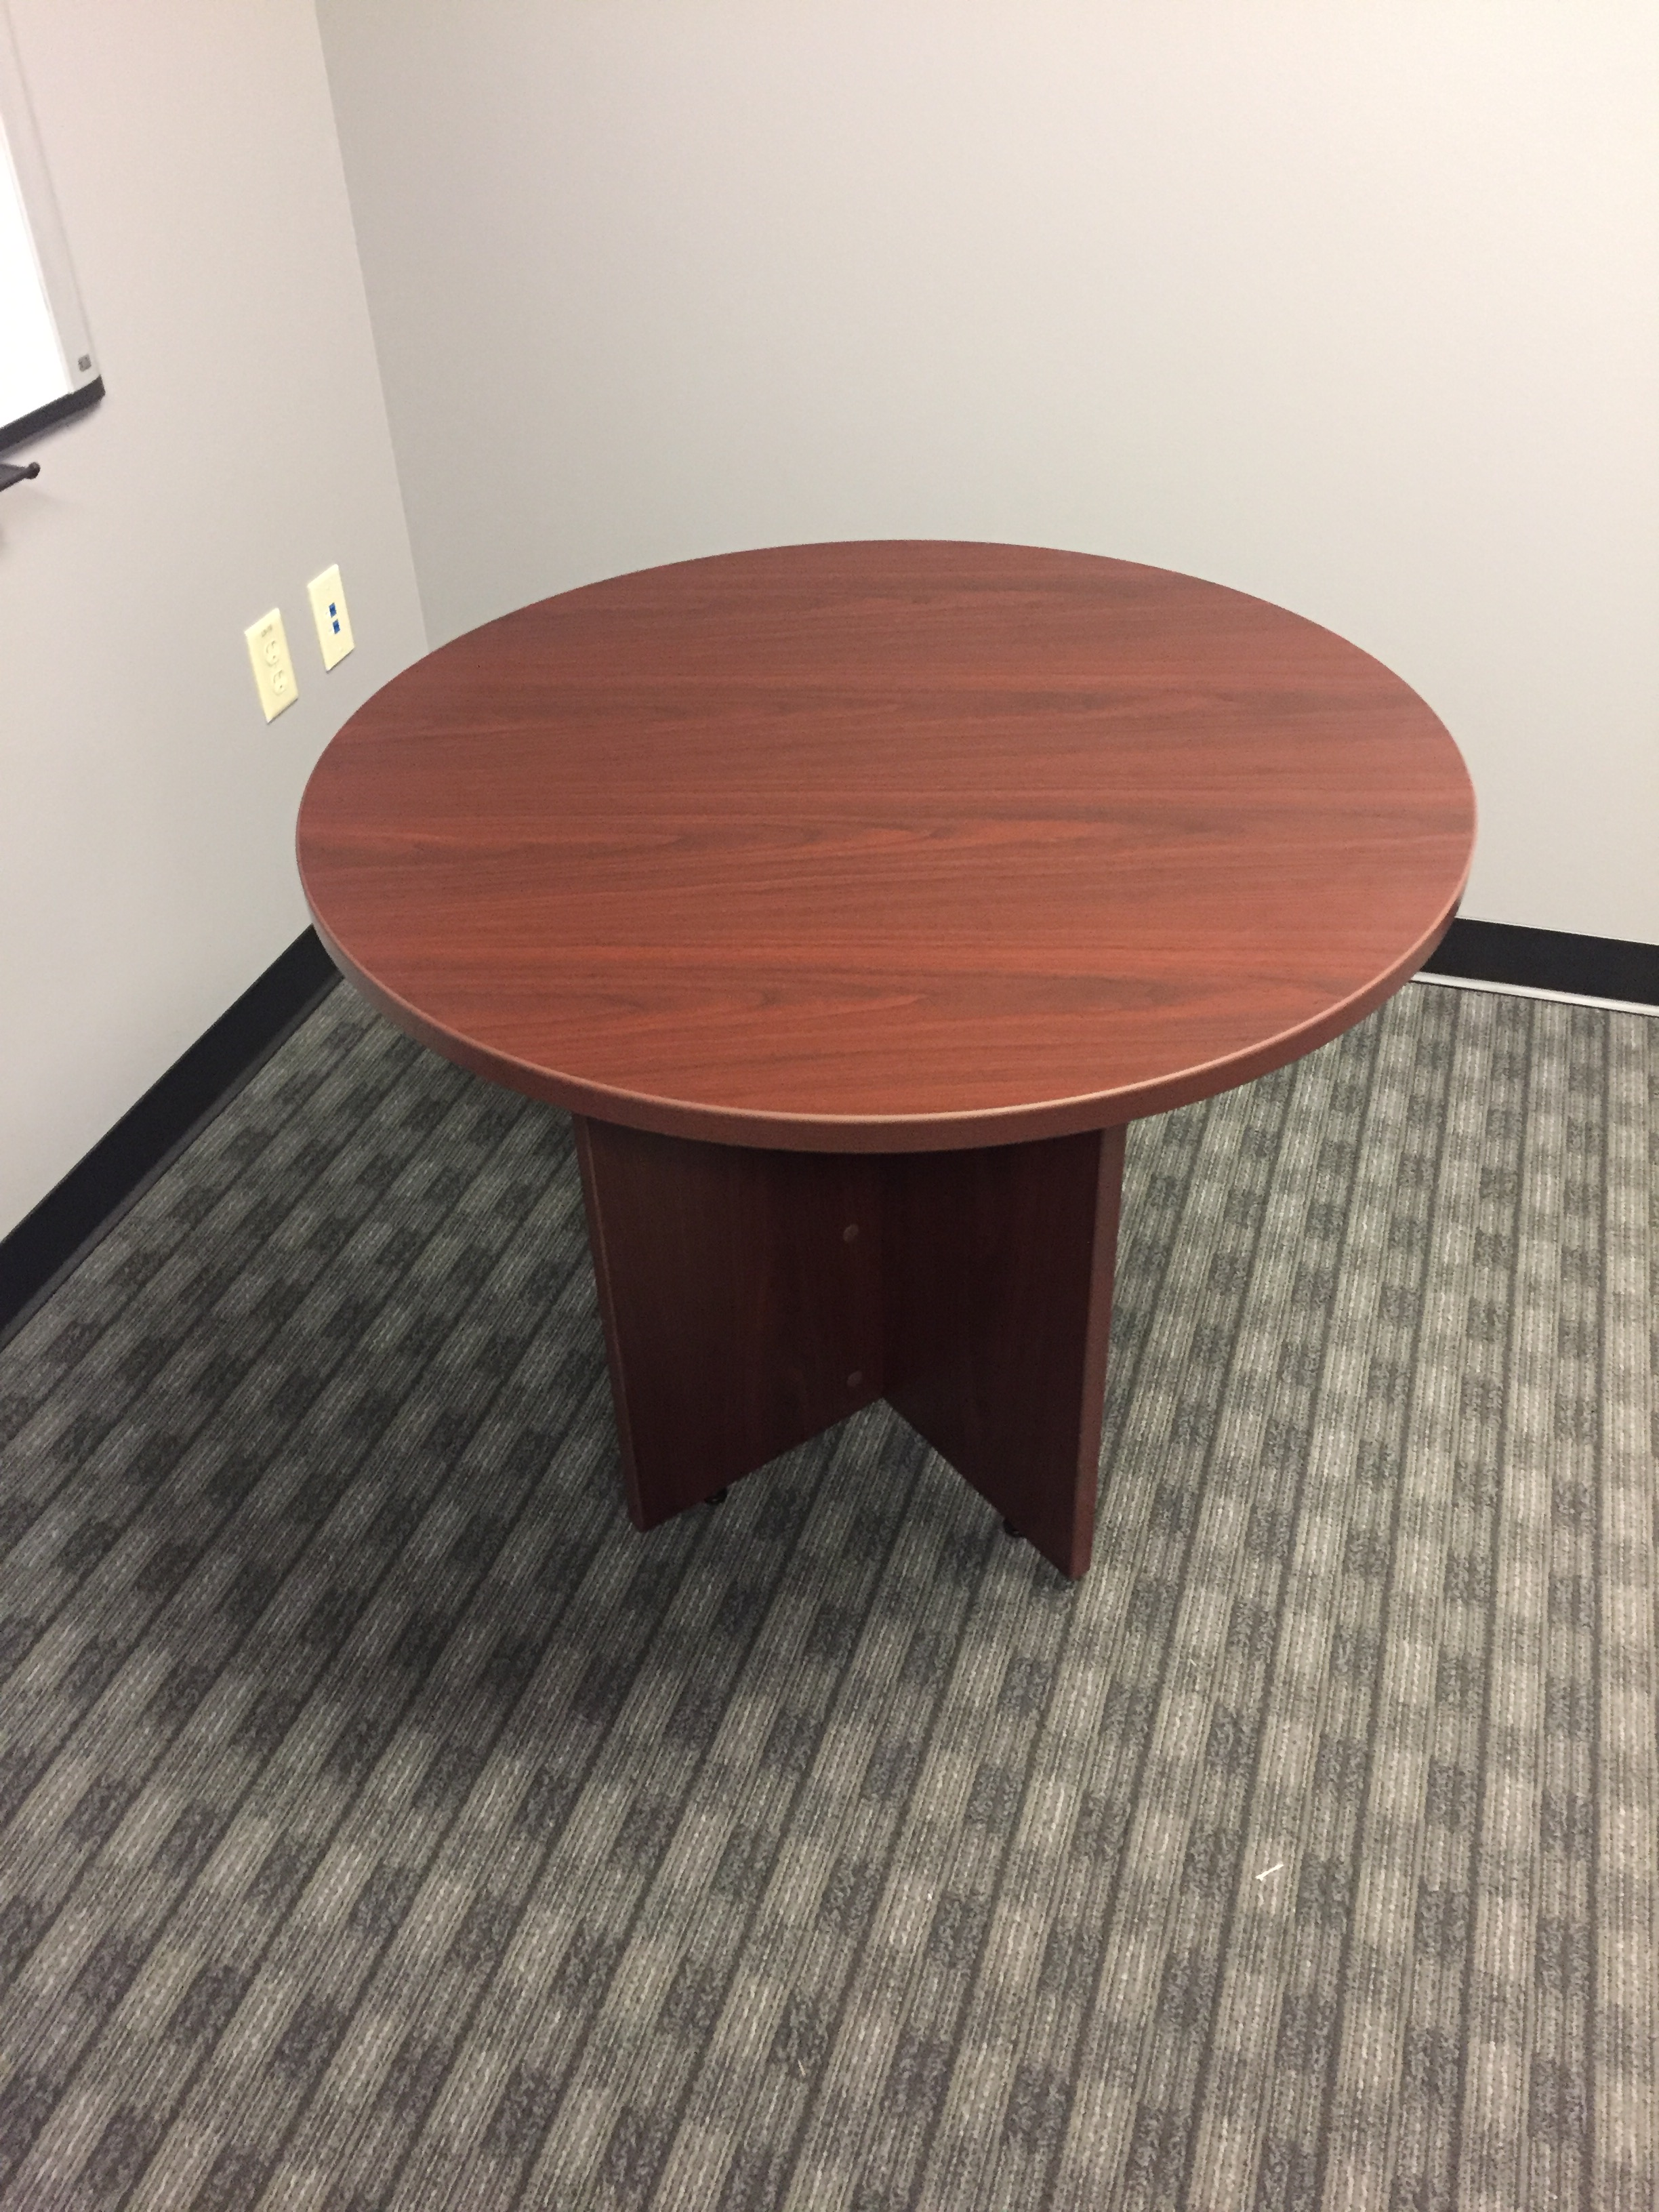 business-furniture-suppliers-in-vero-beach-florida.png